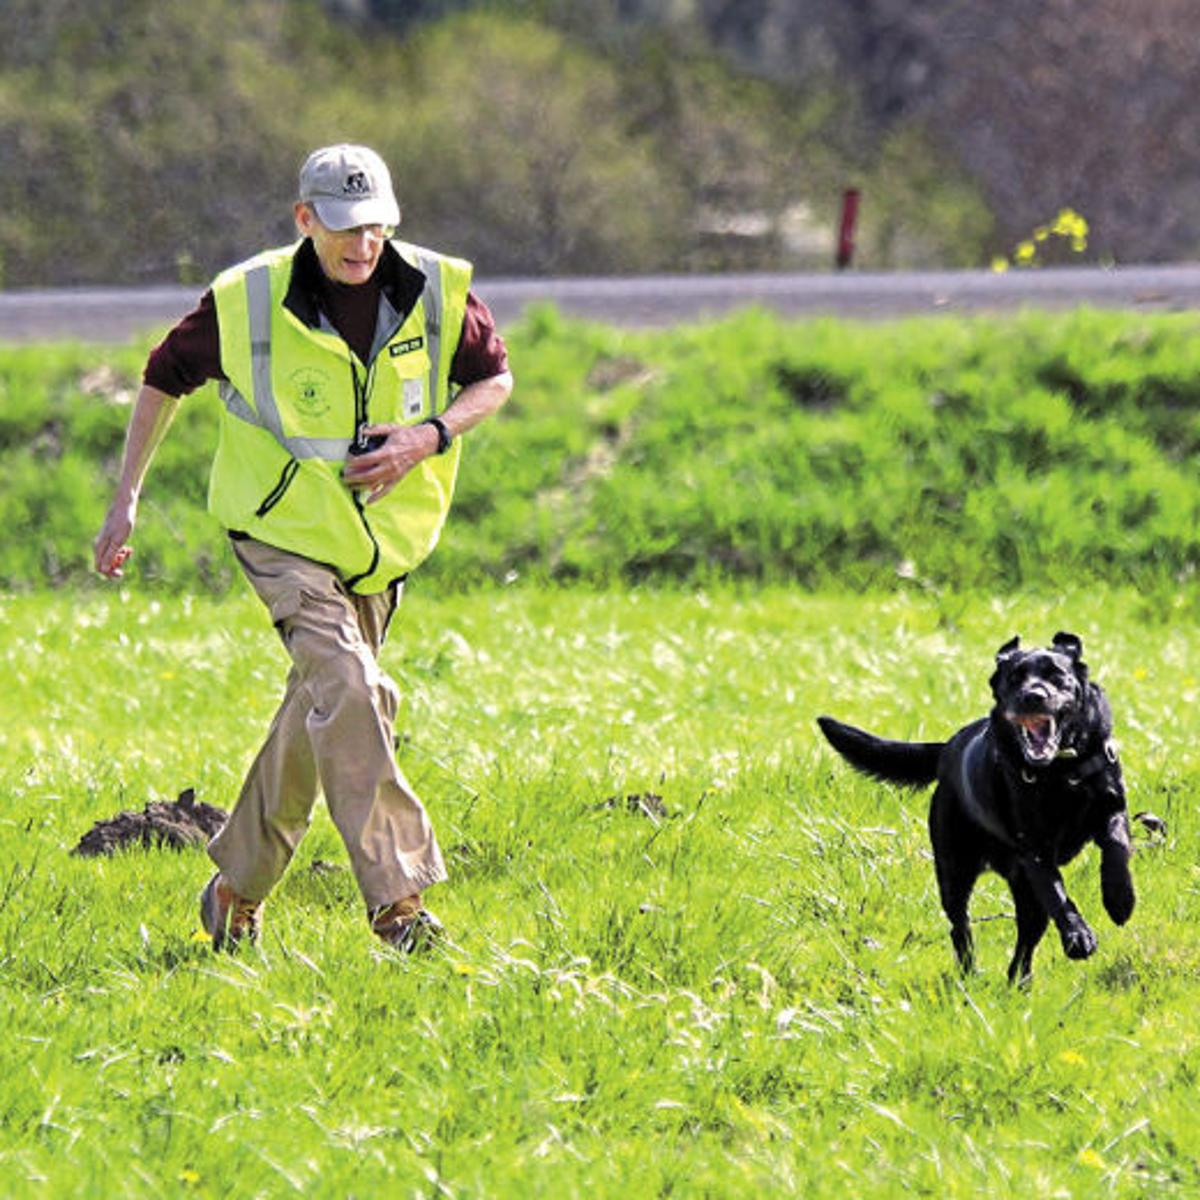 A Little Luck Constant Training Help Prepare Cadaver Dogs